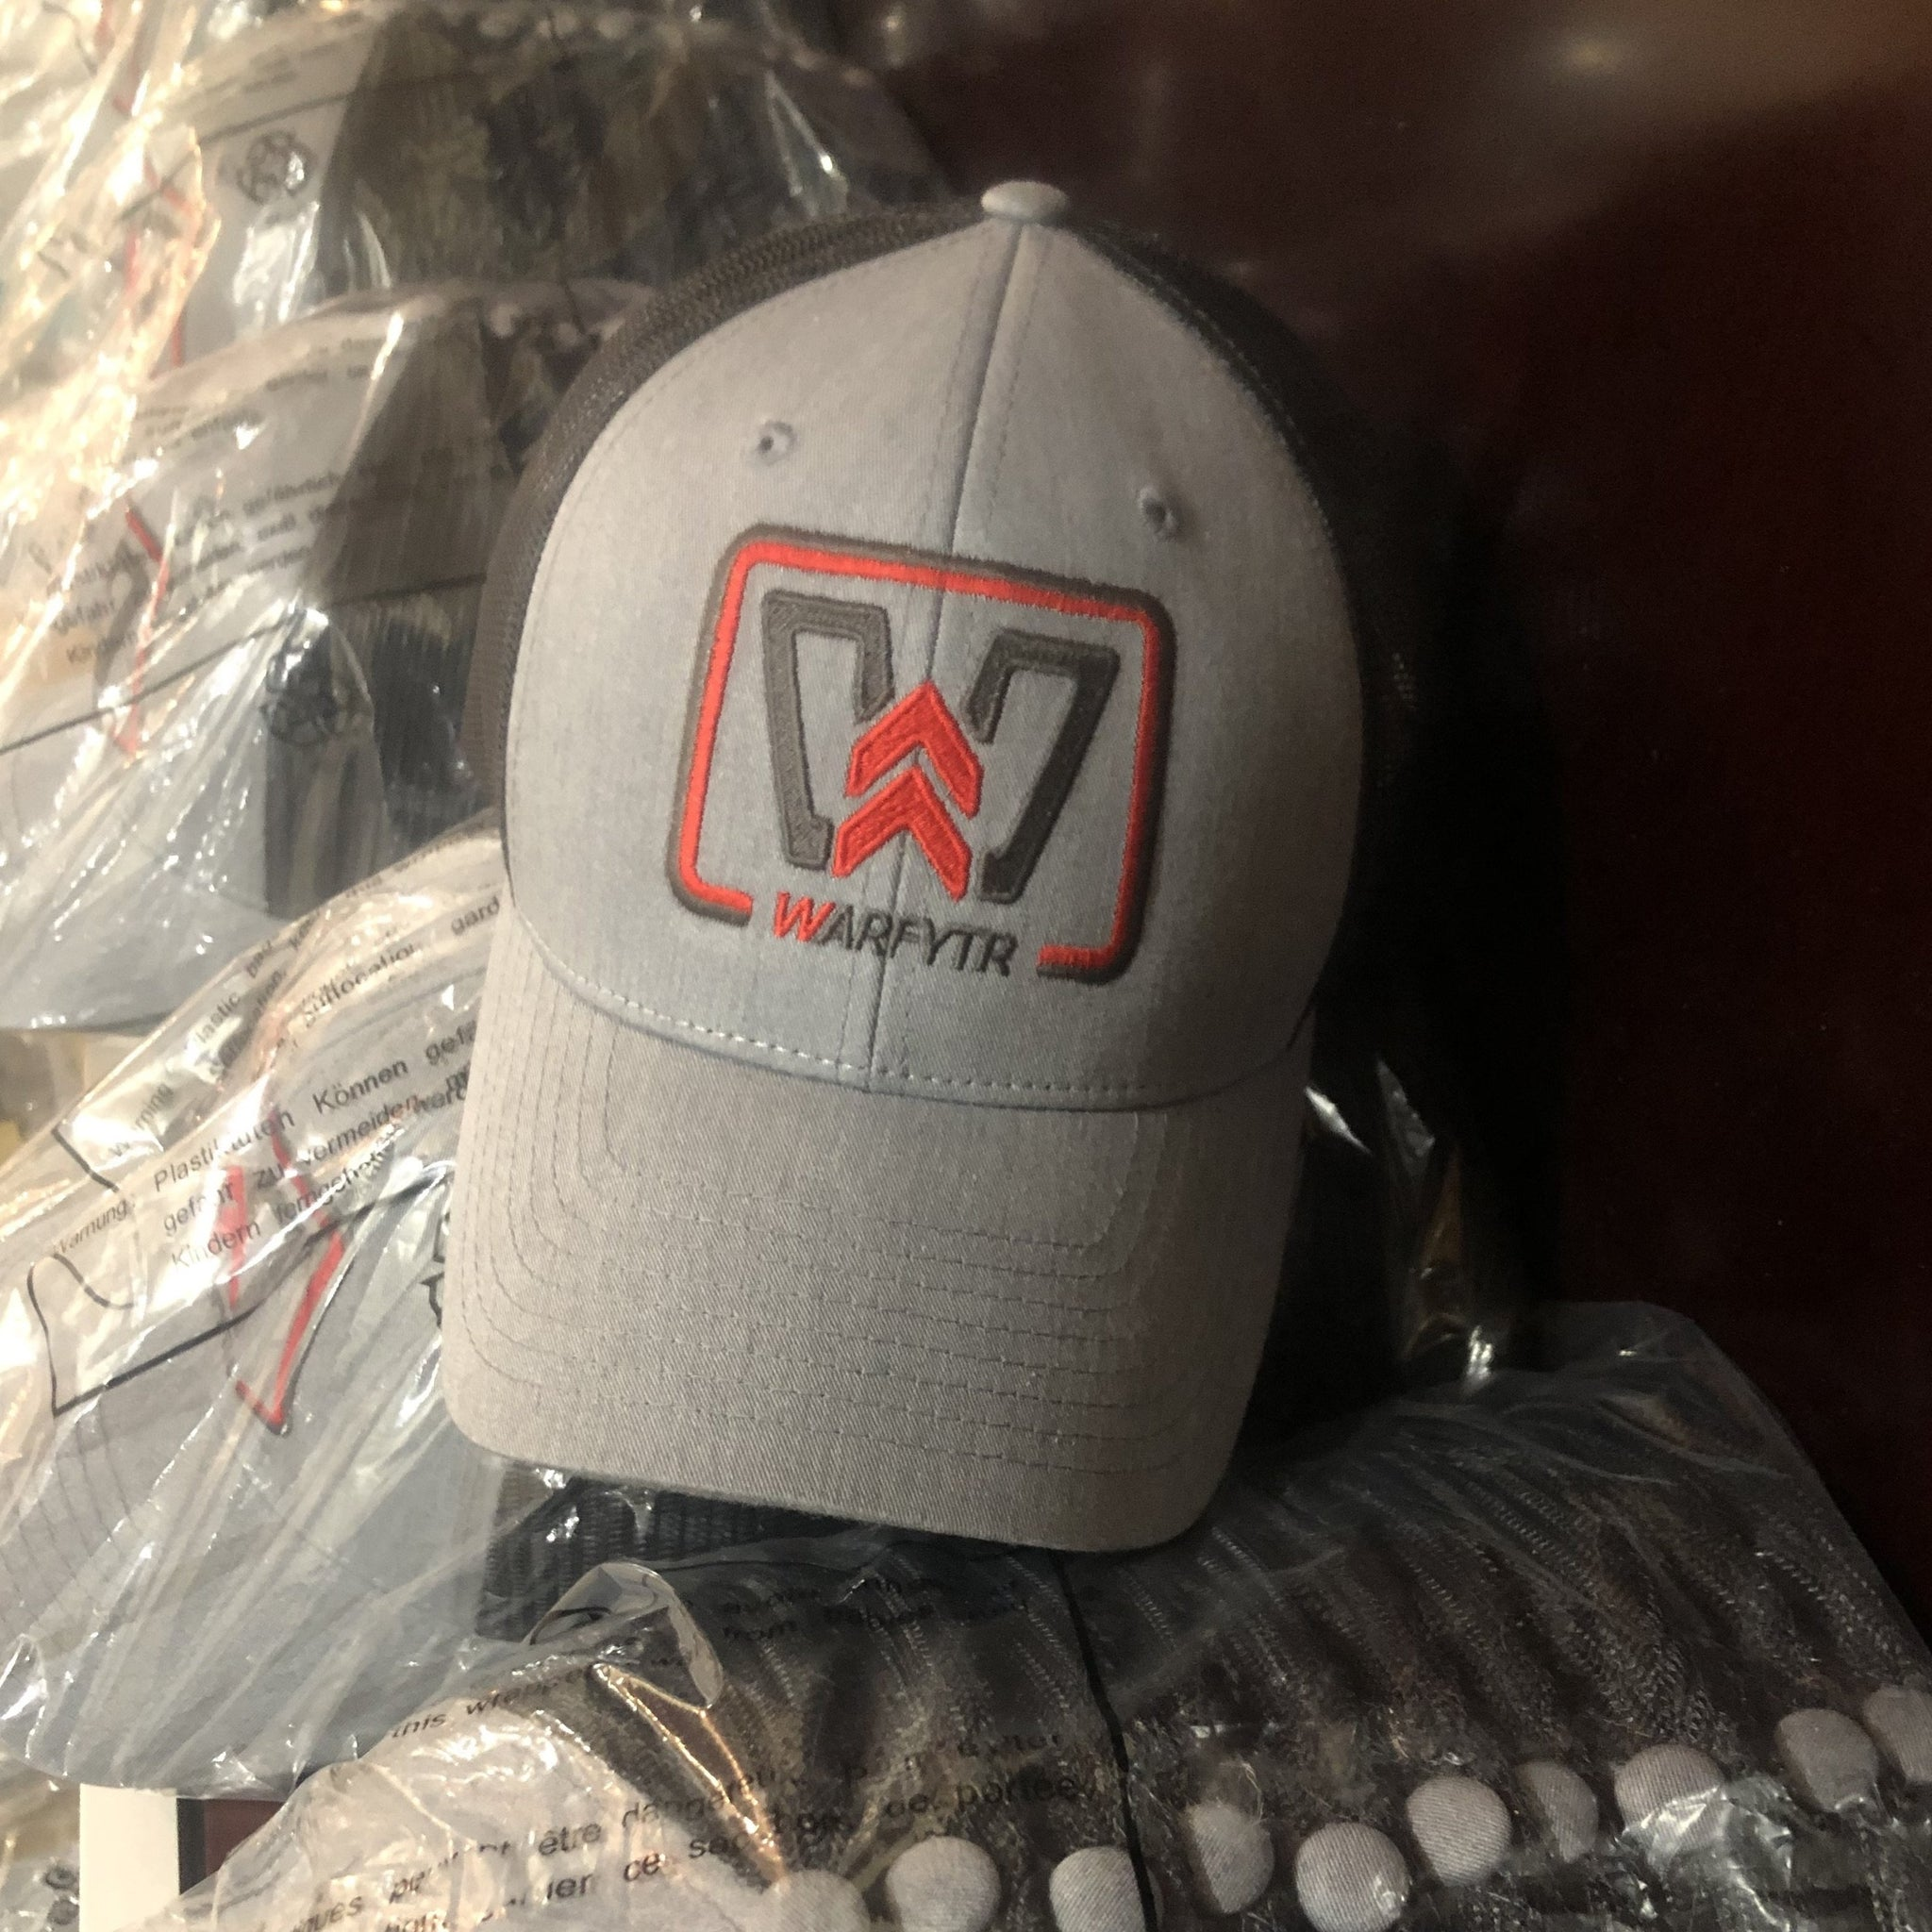 WARFYTR Trucker Hats